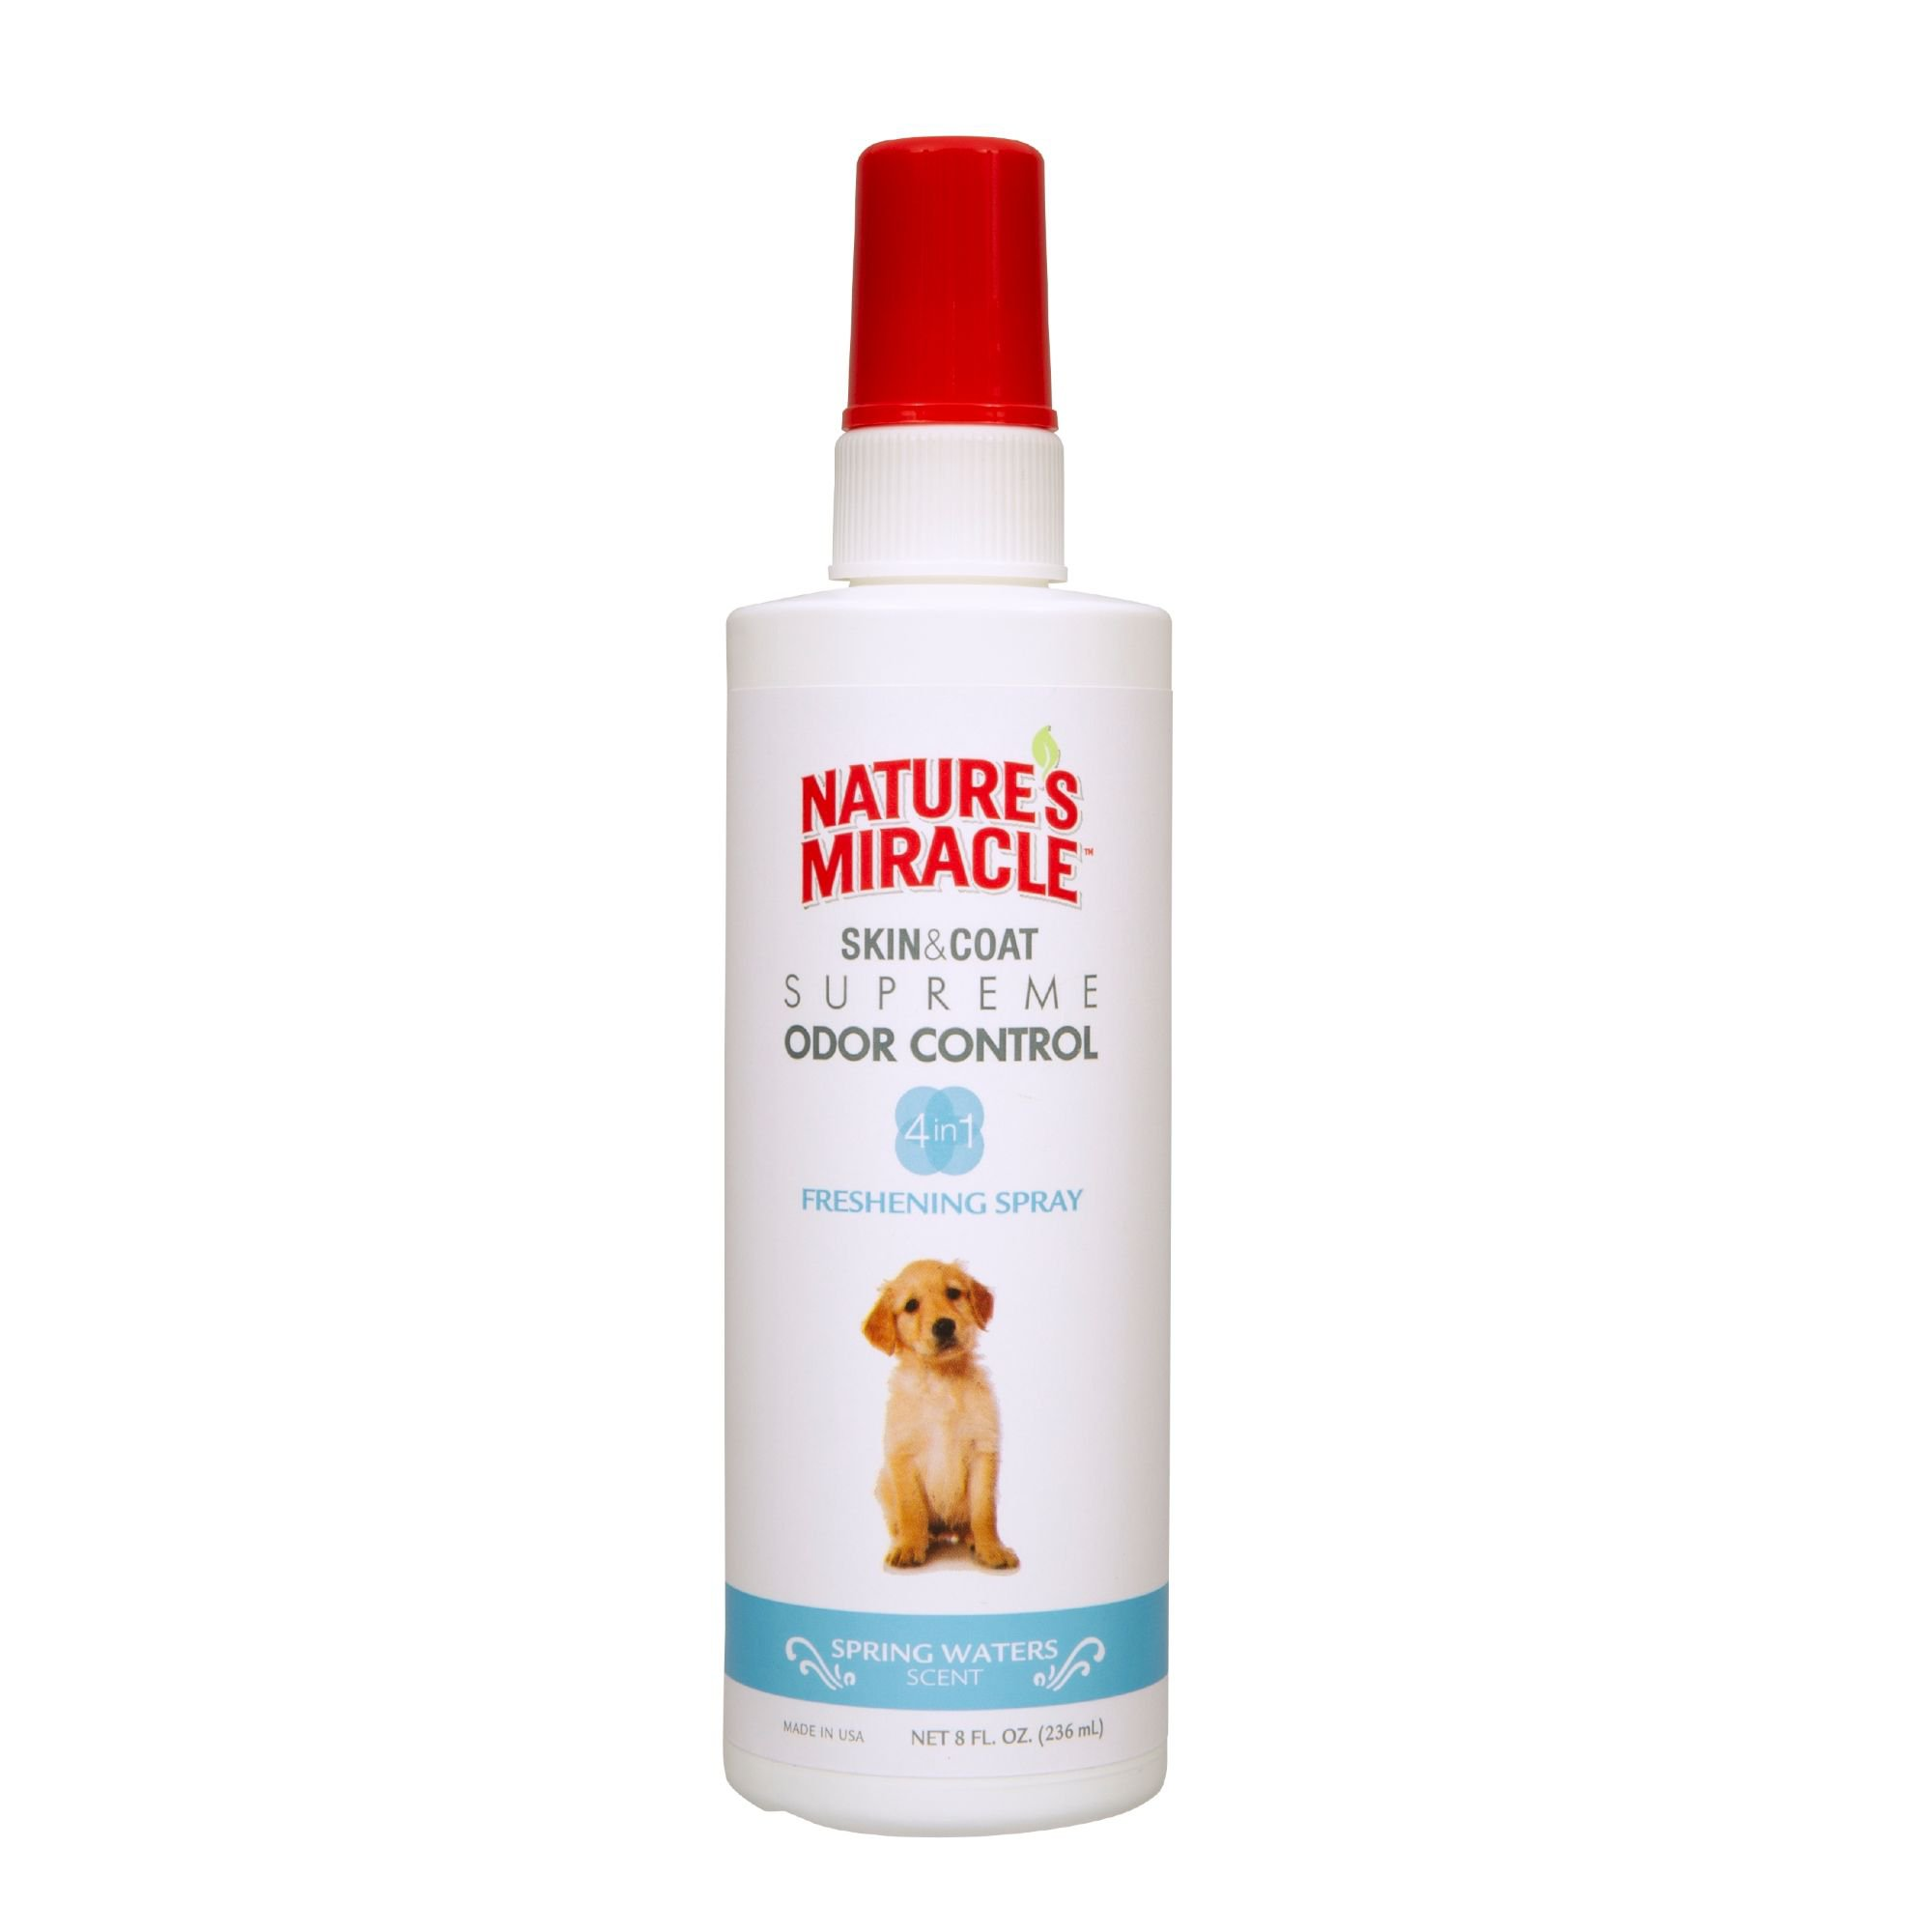 Nature's Miracle Supreme Odor Control Dog Freshening Spray